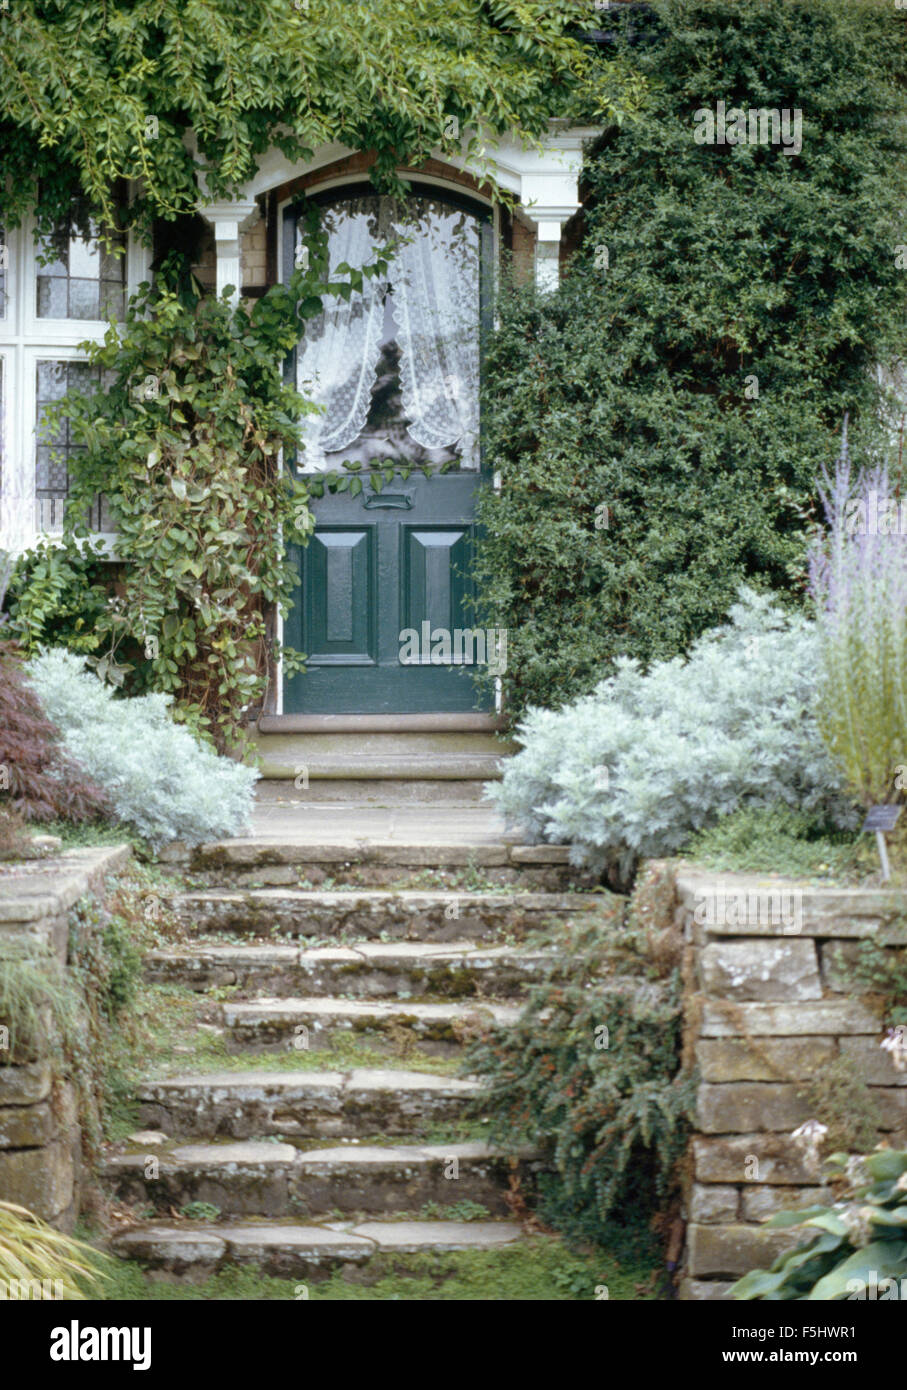 Stone Steps Up To Half Glazed Front Door Of Townhouse With